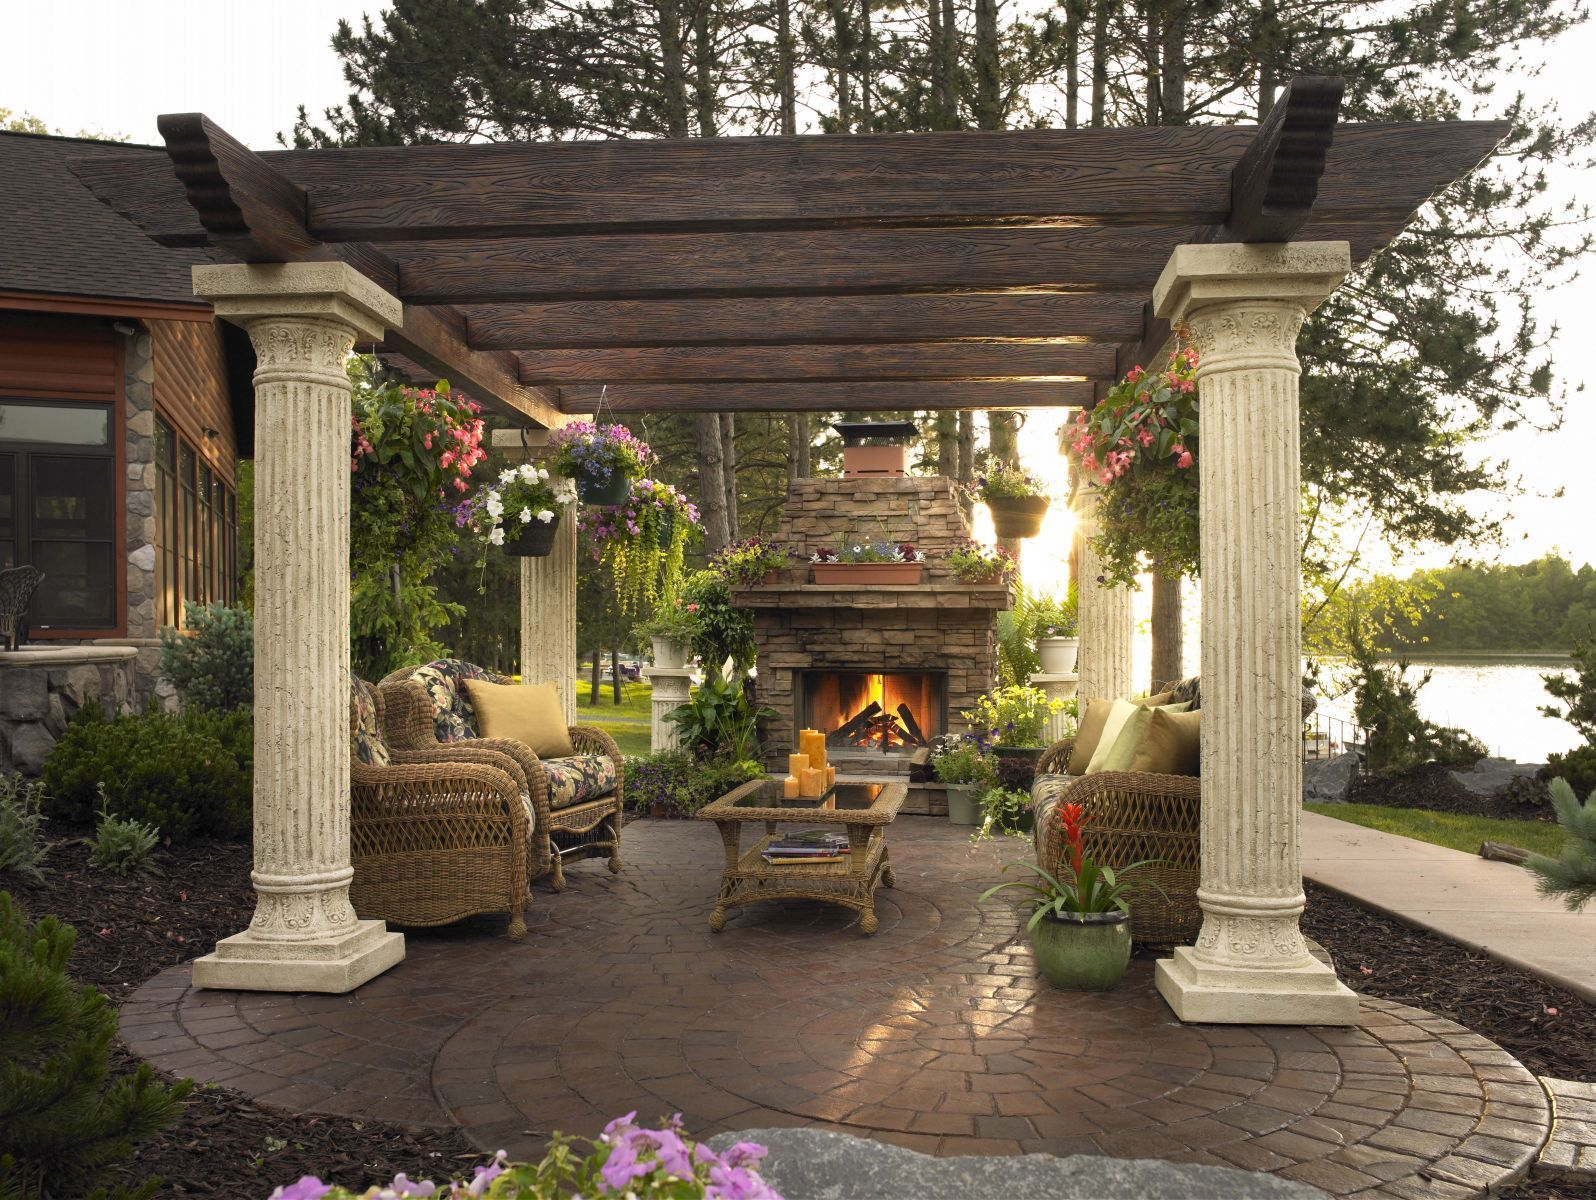 Outdoor spaces awesome home ideas pinterest outdoor spaces